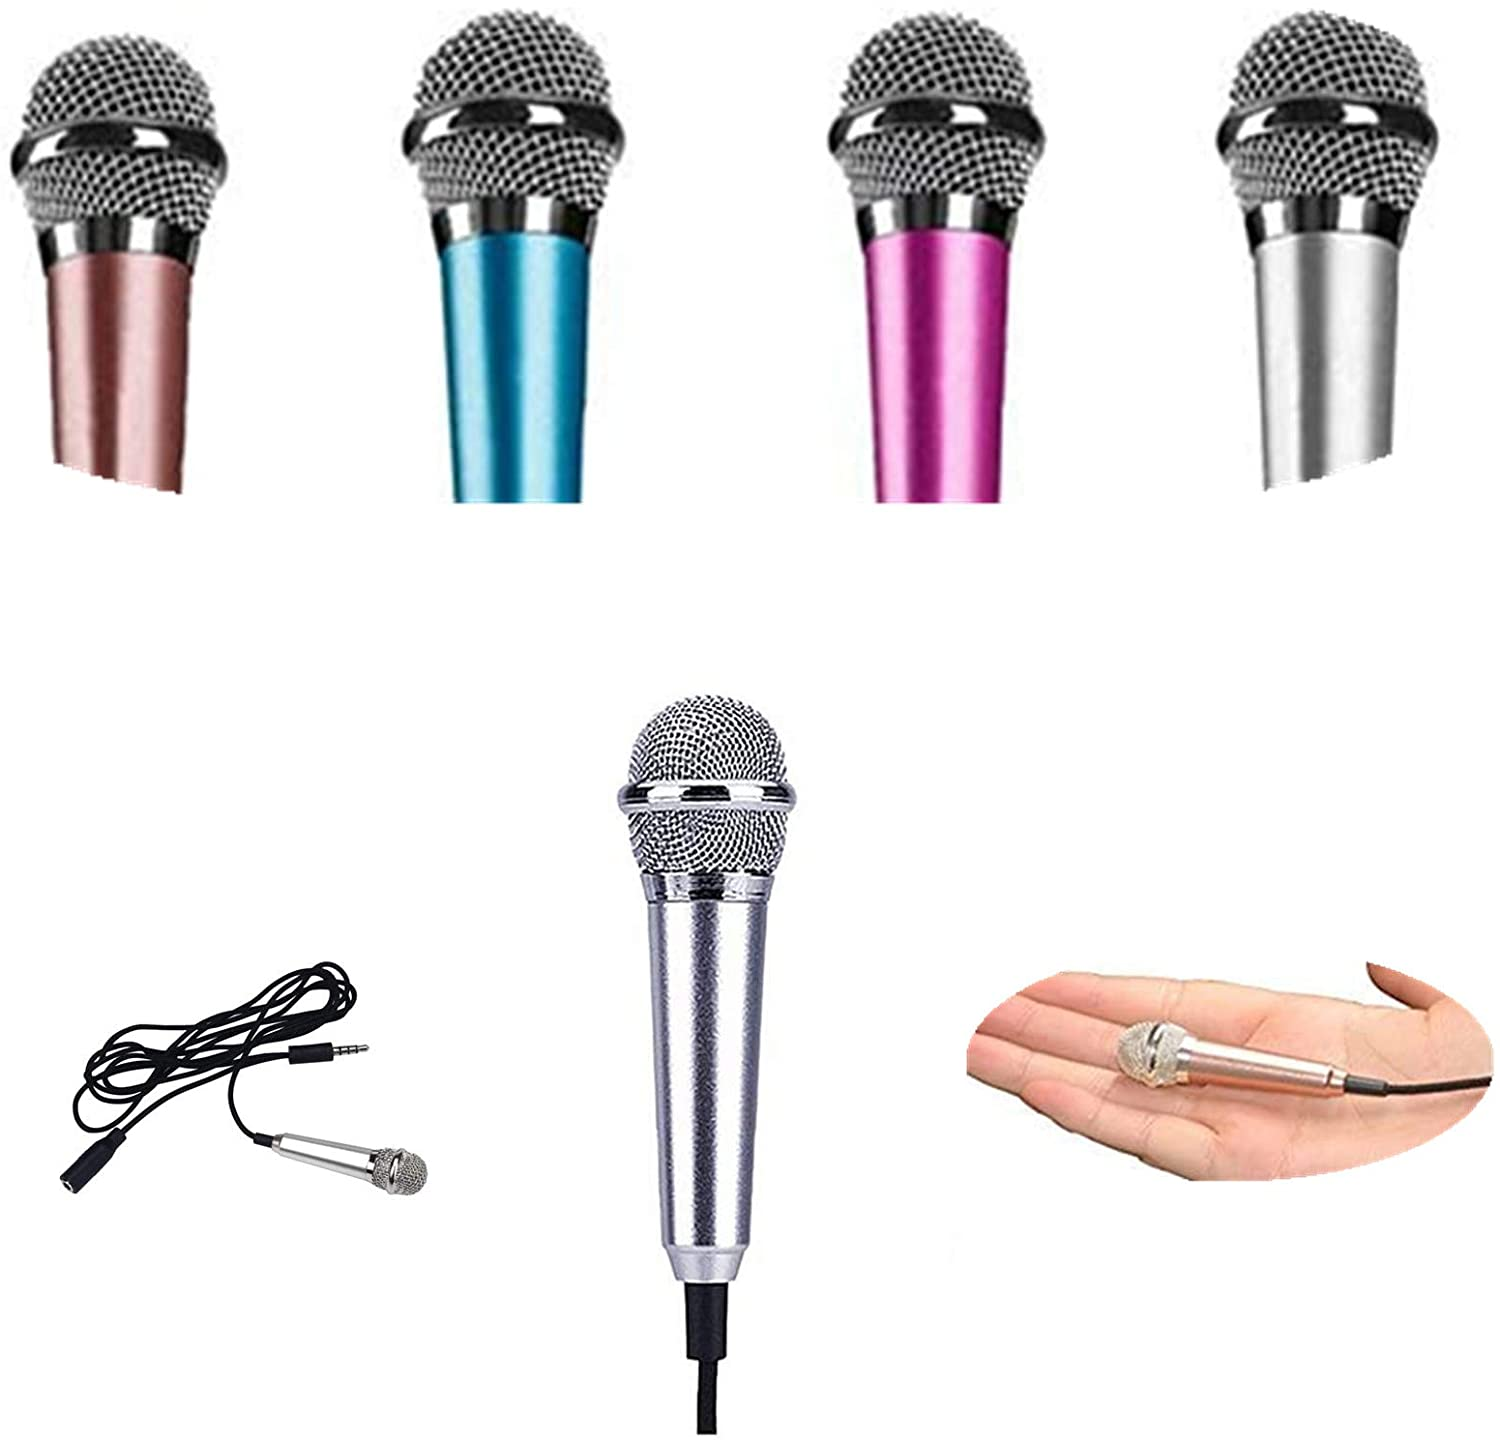 Mini Microphone, Portable Vocal/Instrument Microphone Suit for Phones/Android Phone and Laptops (Silver)